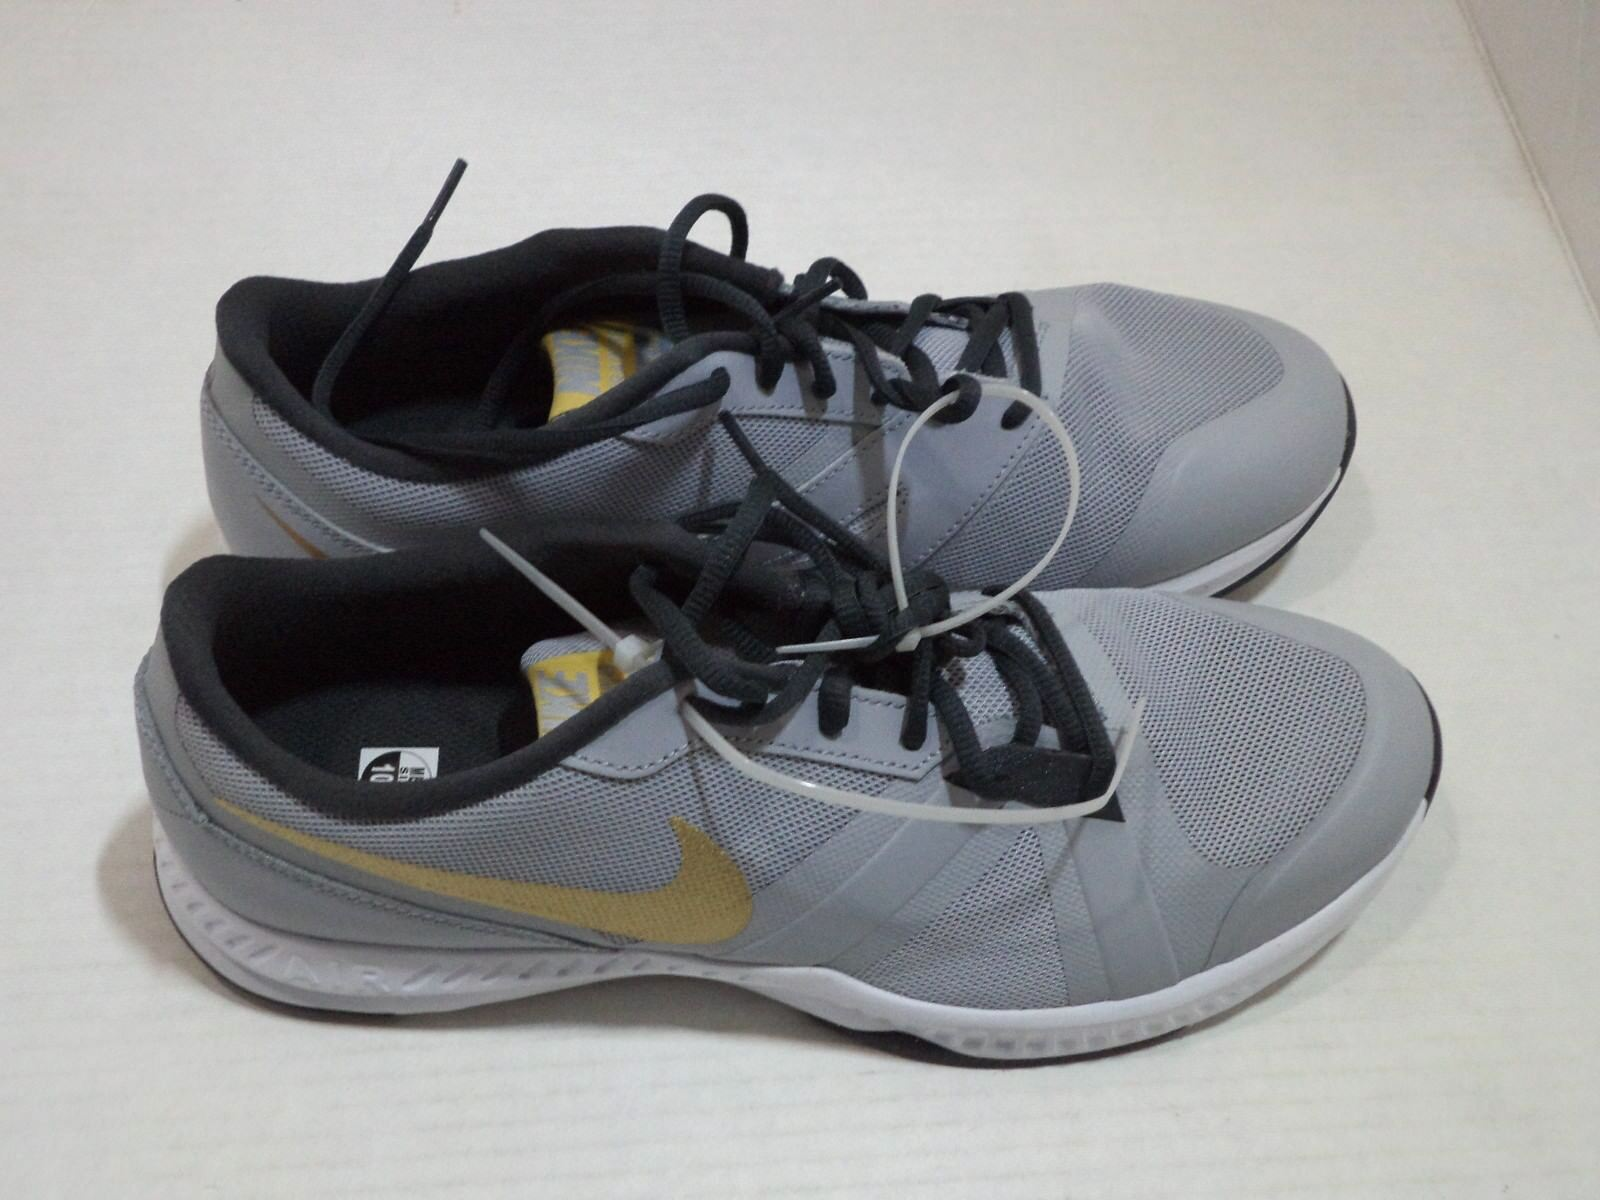 Nike Men's Air Epic Speed TR Cross Trainer Size 9.5 - 13 Color Gray Black & Gold